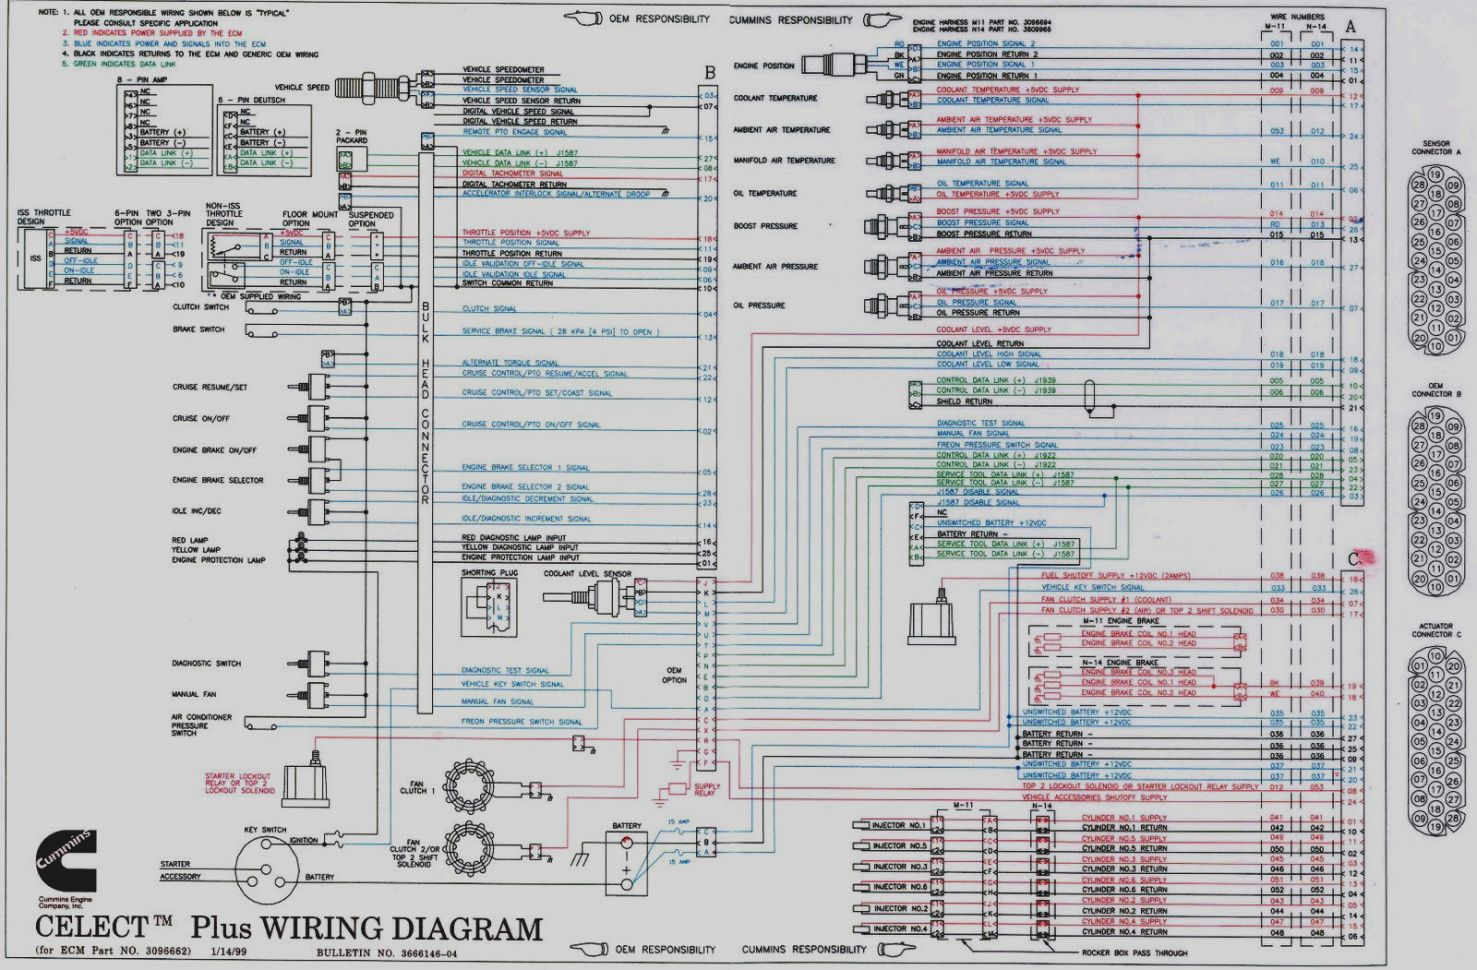 hight resolution of awesome cummins n14 celect plus wiring diagram freightliner columbia cummins n14 celect wiring diagram awesome cummins